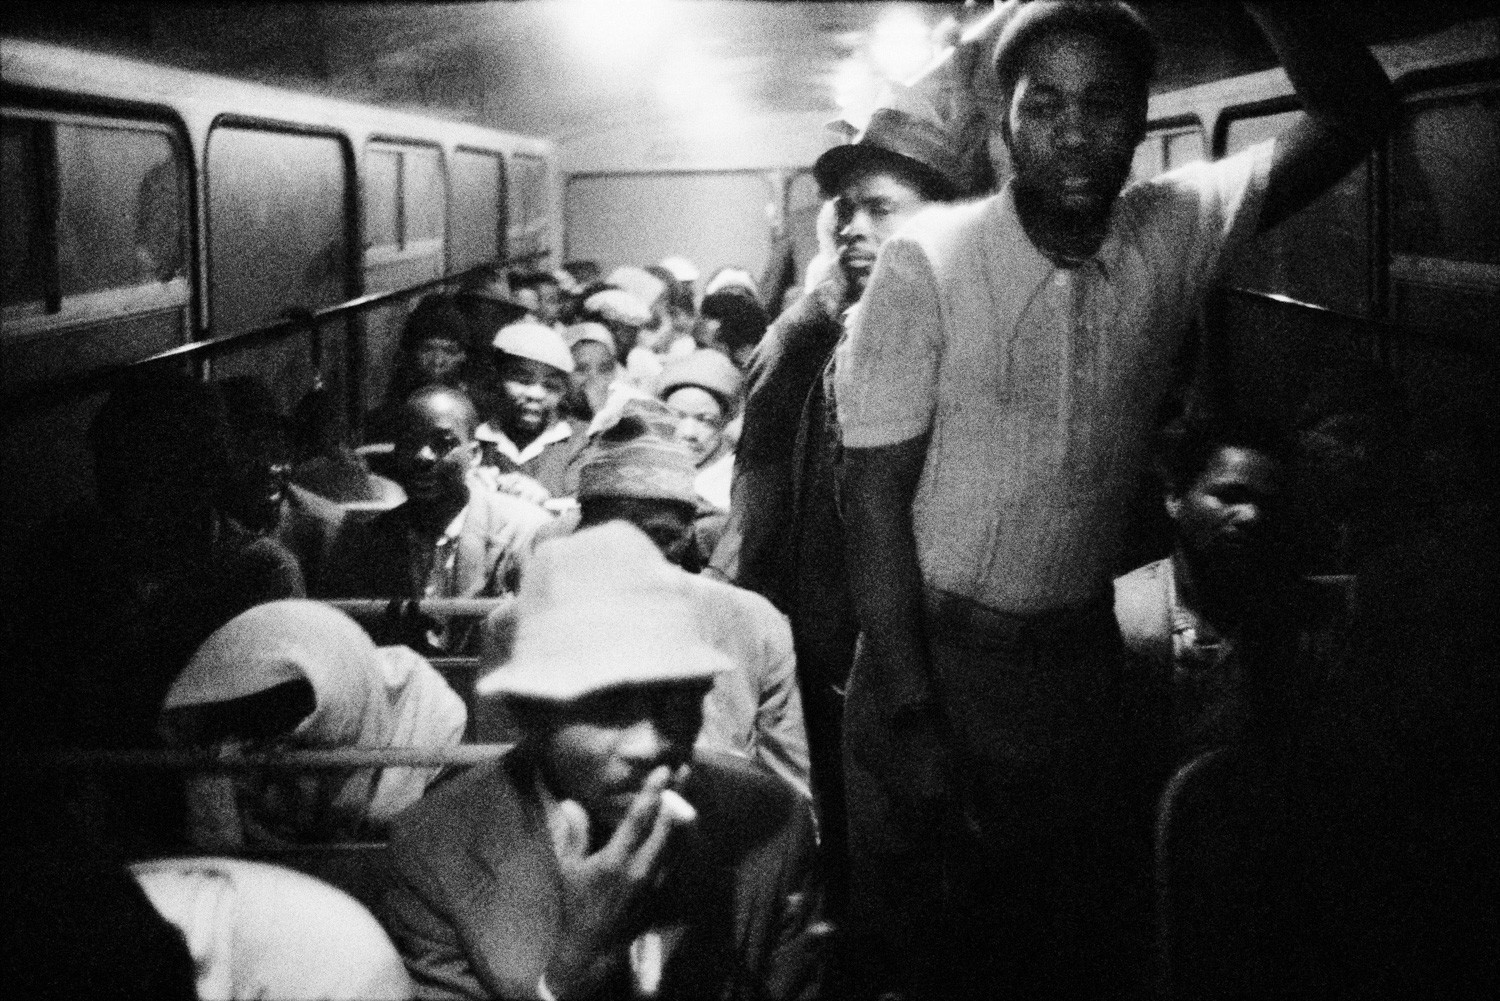 David Goldblatt, 3:15 am. Going to work: The Wolwekraal - Marabastad bus is licensed to carry 62 sitting and 29 standing passengers, 1983